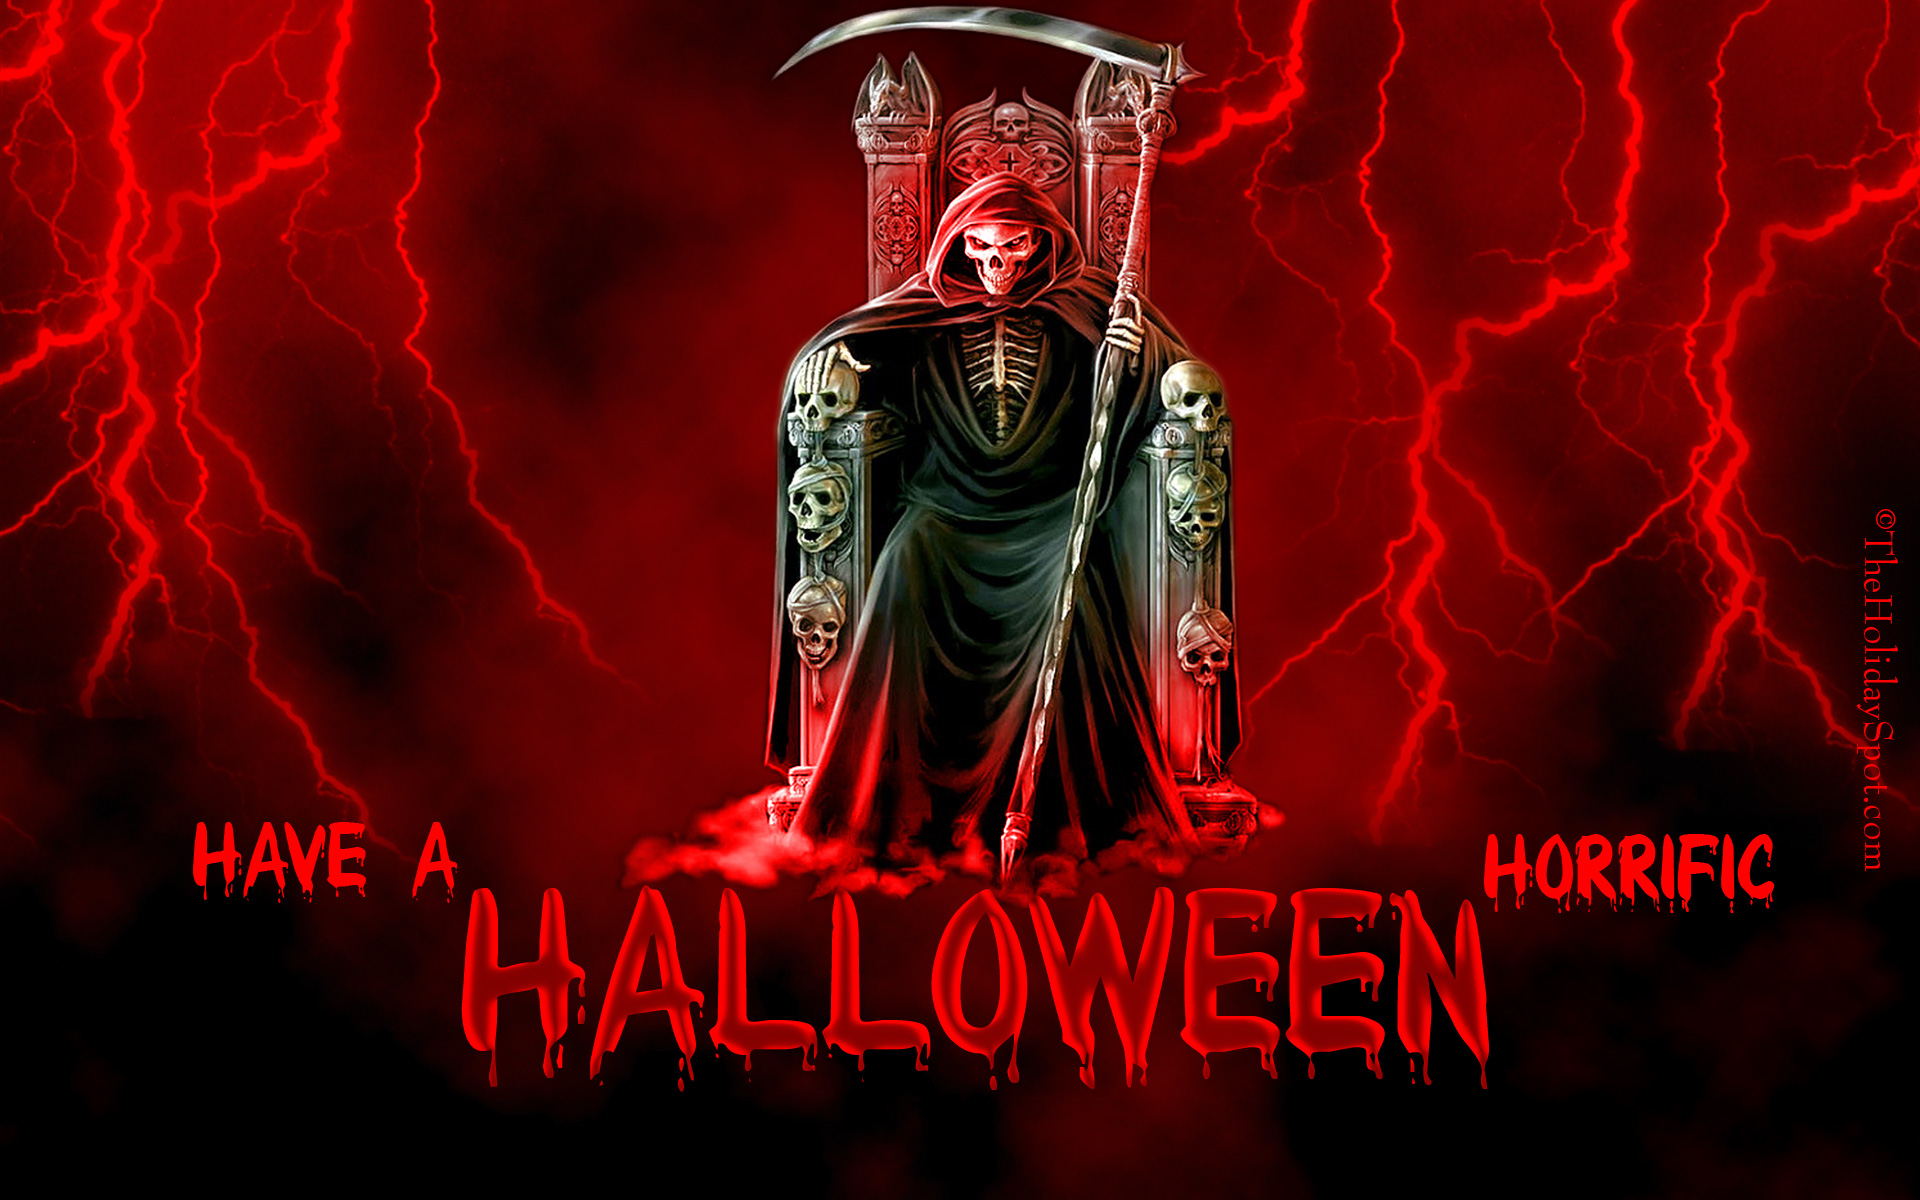 Good Wallpaper Halloween Skeleton - 31e2a1cb5e78e2df8e445ea051fa2b2a  Perfect Image Reference_327010.jpg